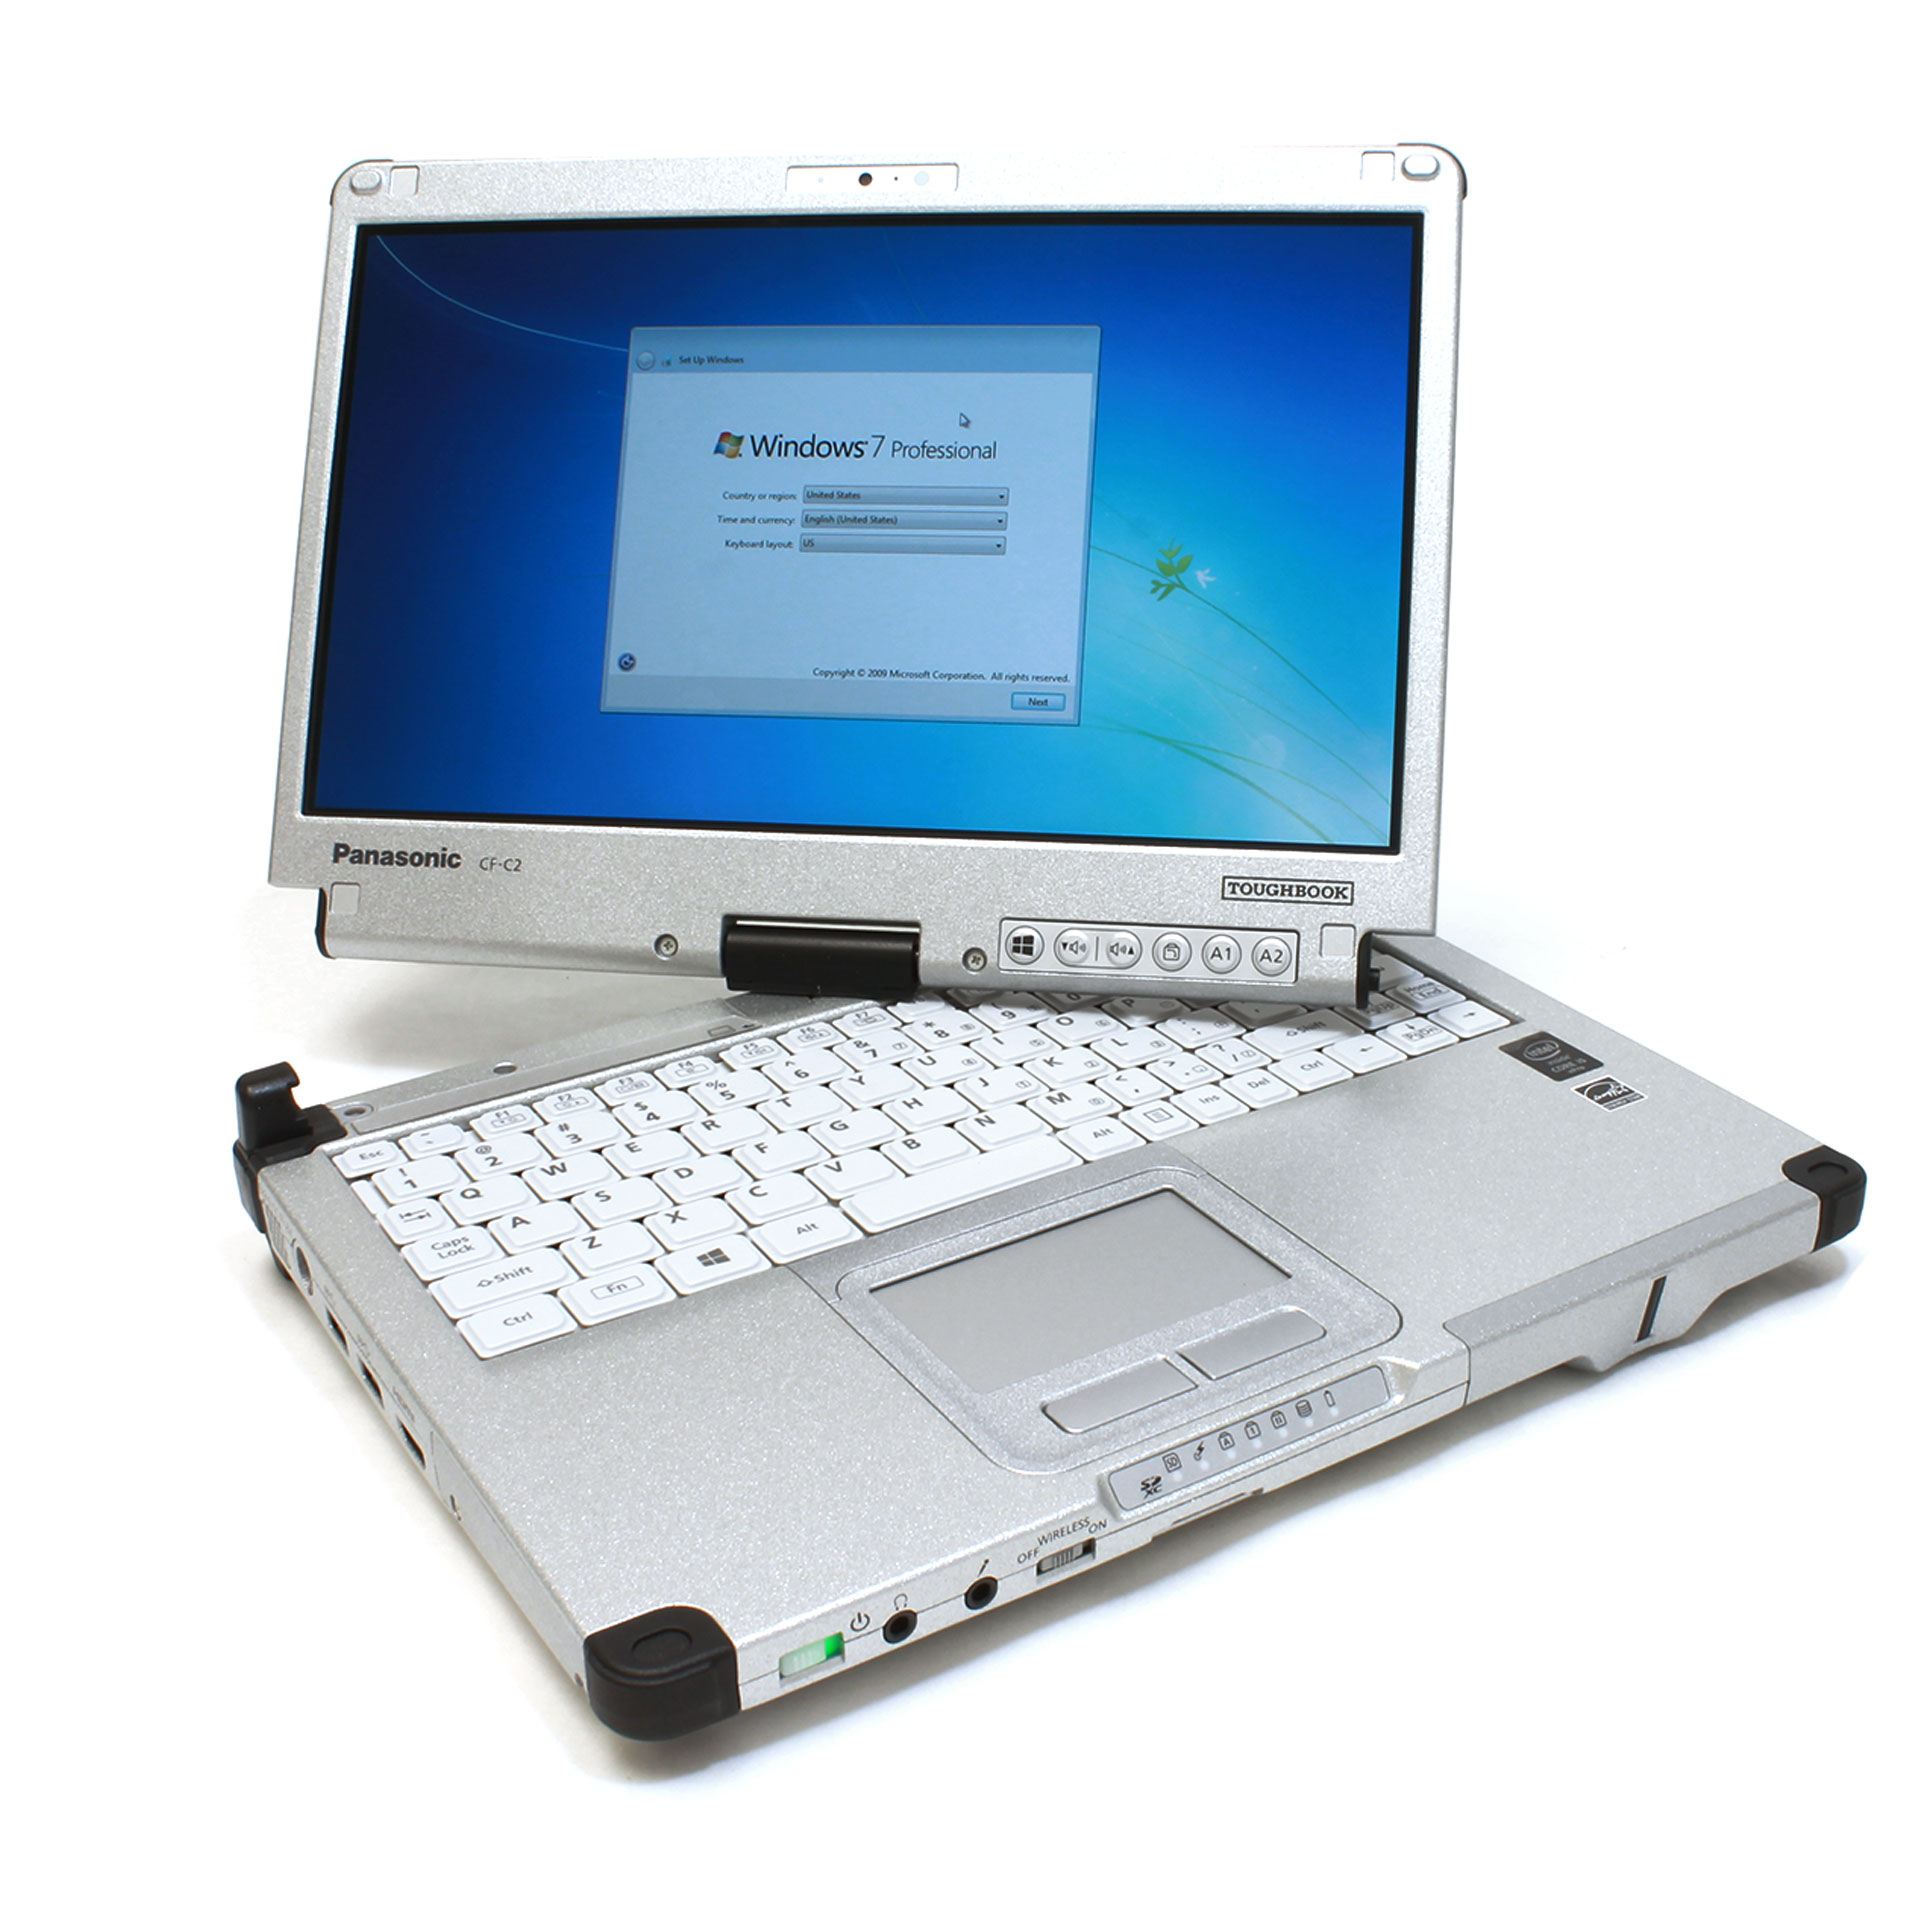 Panasonic Toughbook CF-C2CUGPXKM Intel i5-4310U 2.0GHz 4GB 256GB